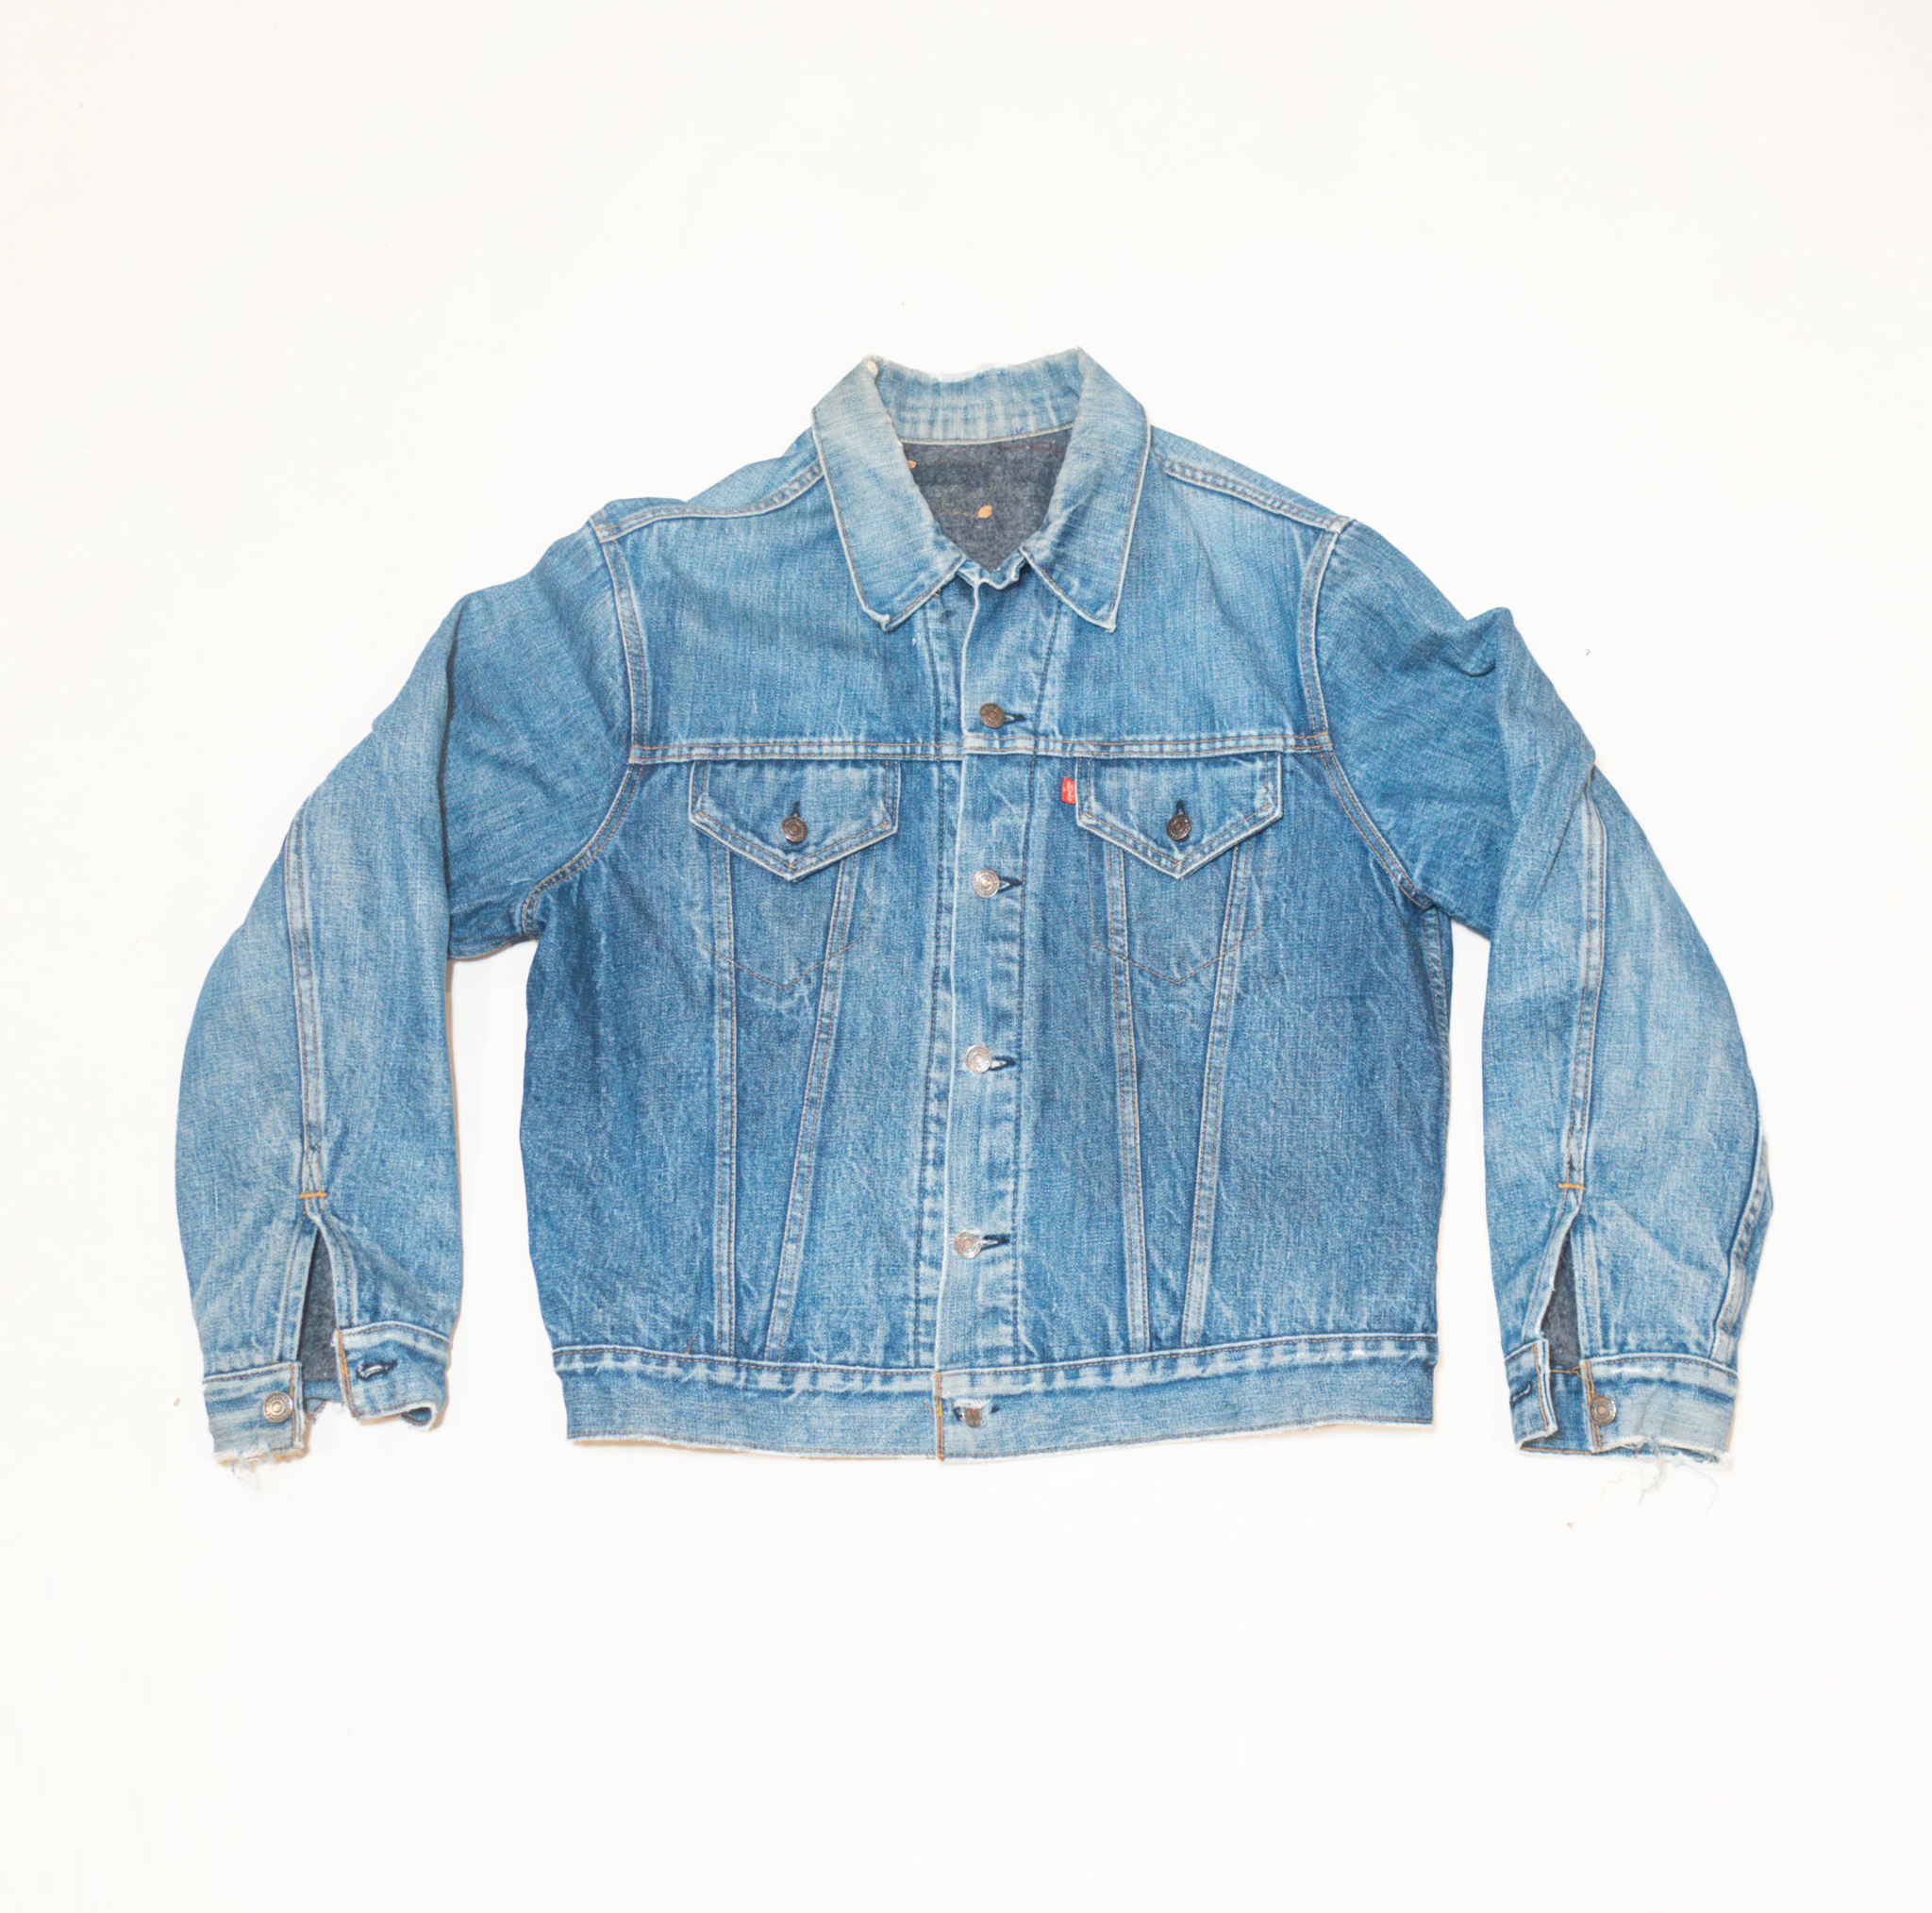 Hand Picked Vintage: Levi's Blanket Lined Denim Jacket